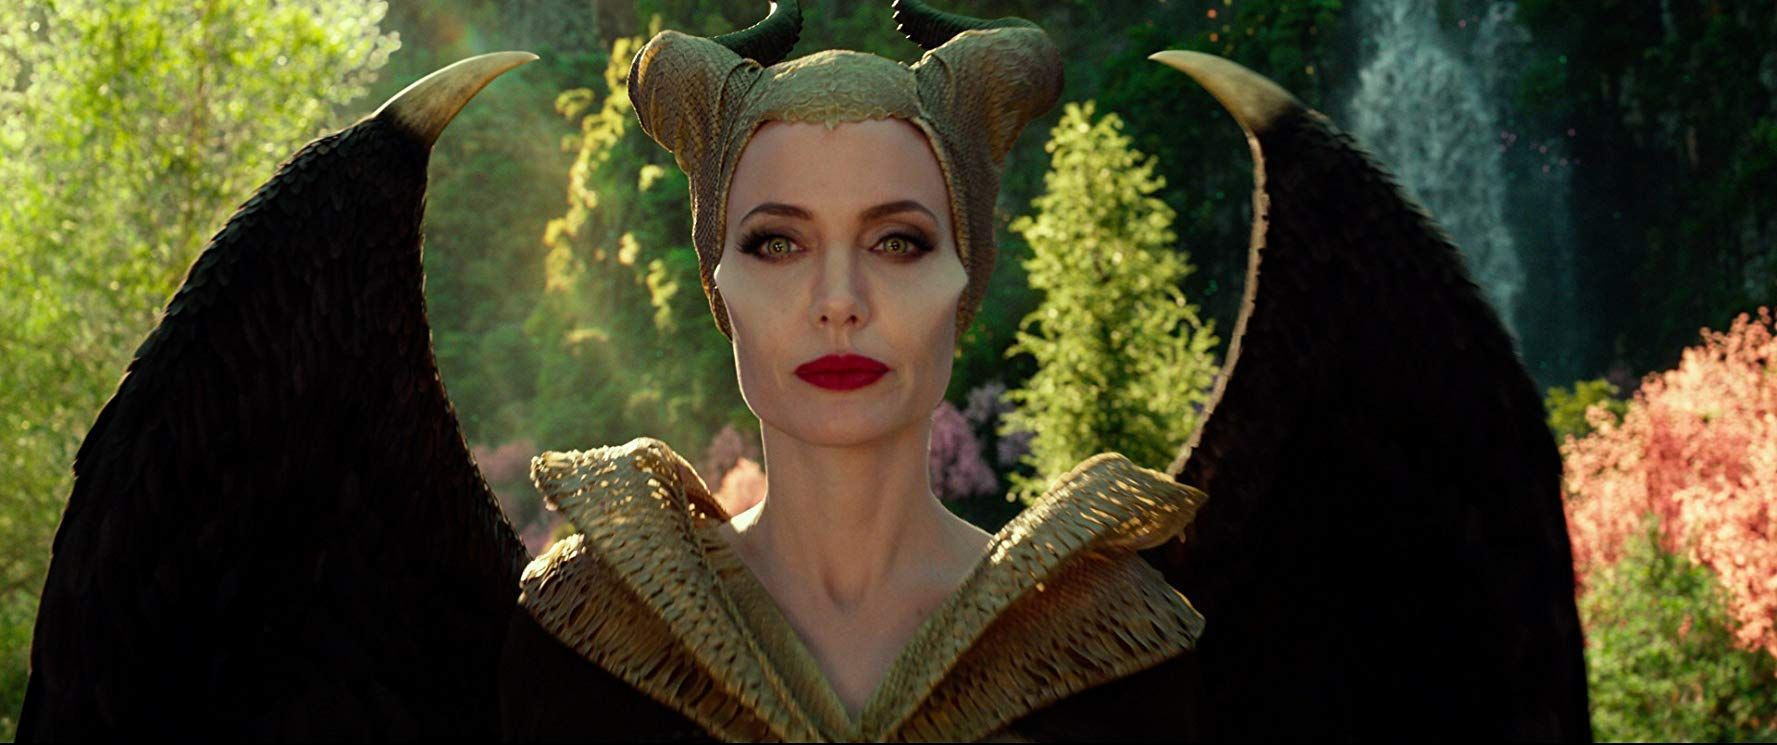 Maleficent Sequel: Title, Cast, Premiere Date, Trailer, Costume